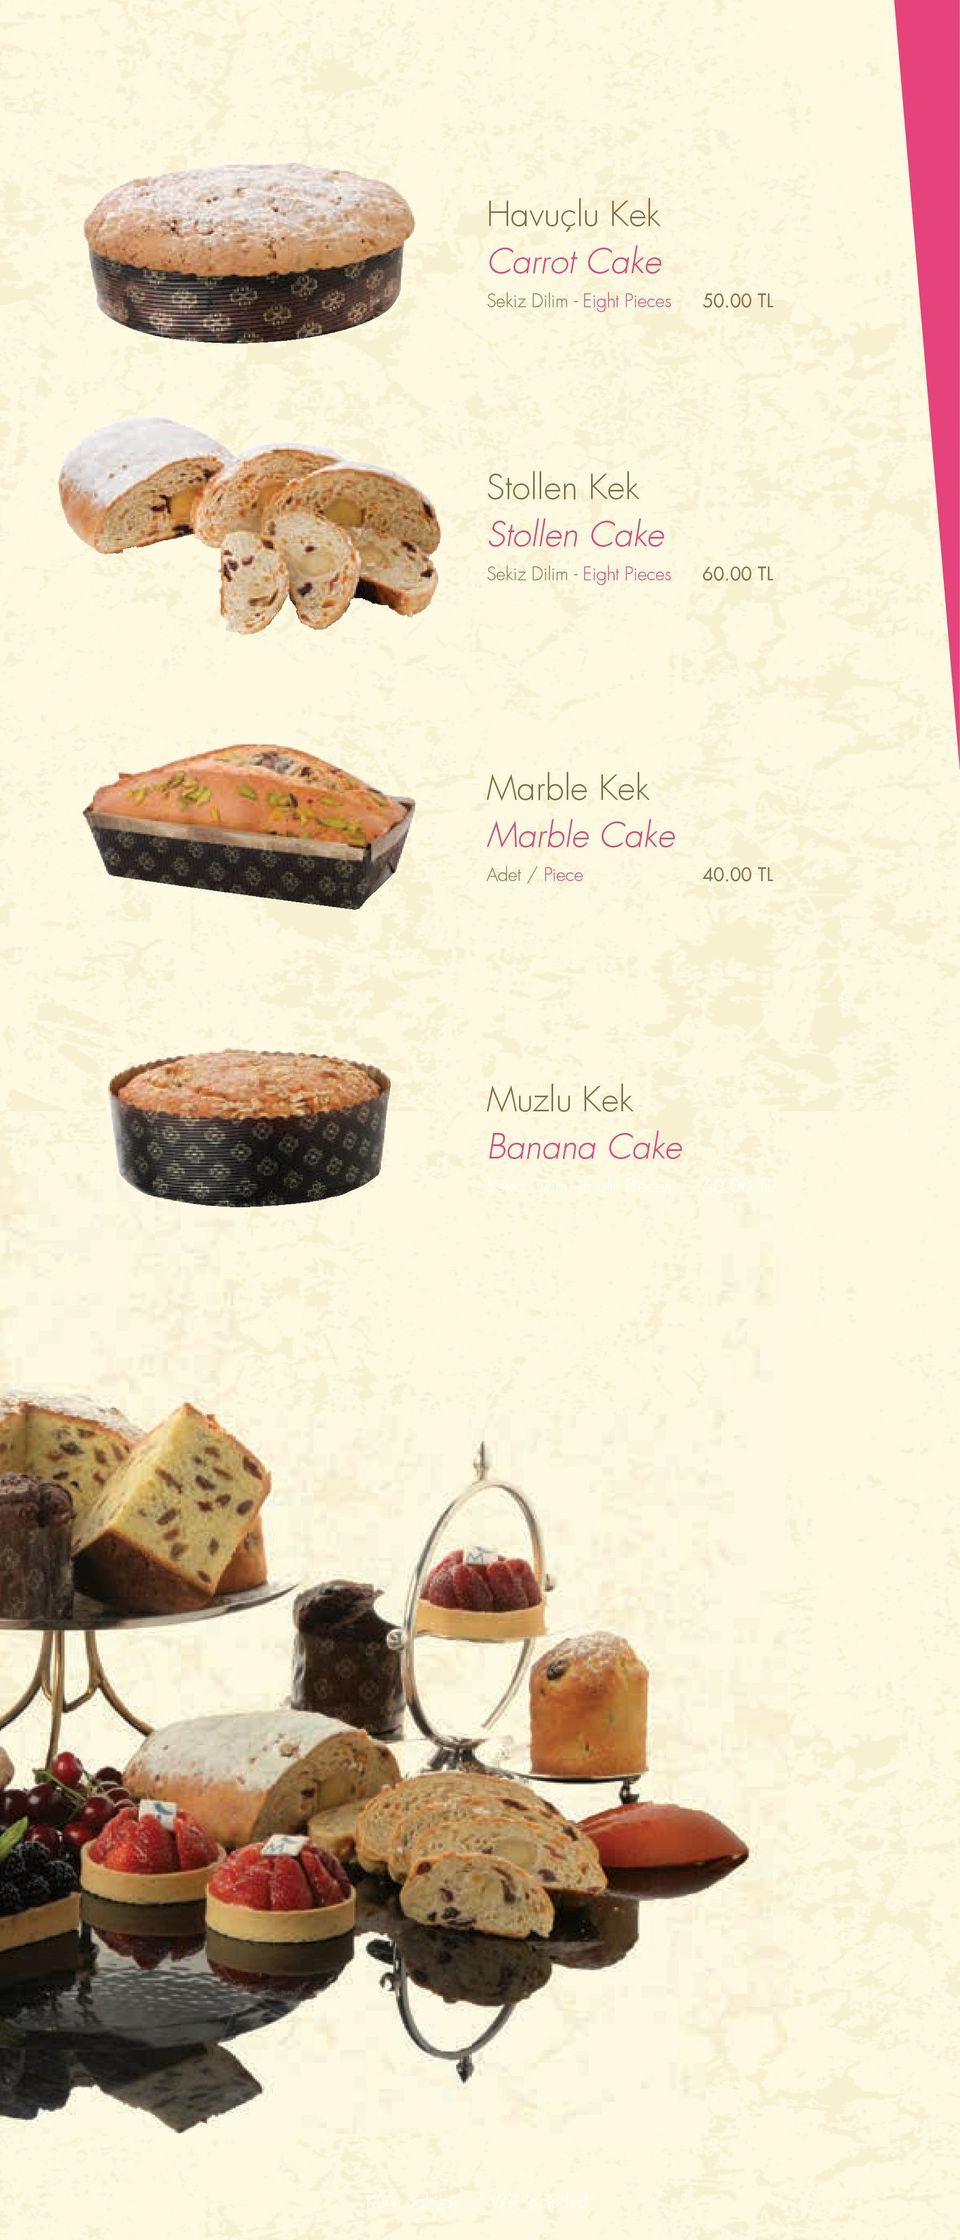 00 TL Marble Kek Marble Cake Adet / Piece